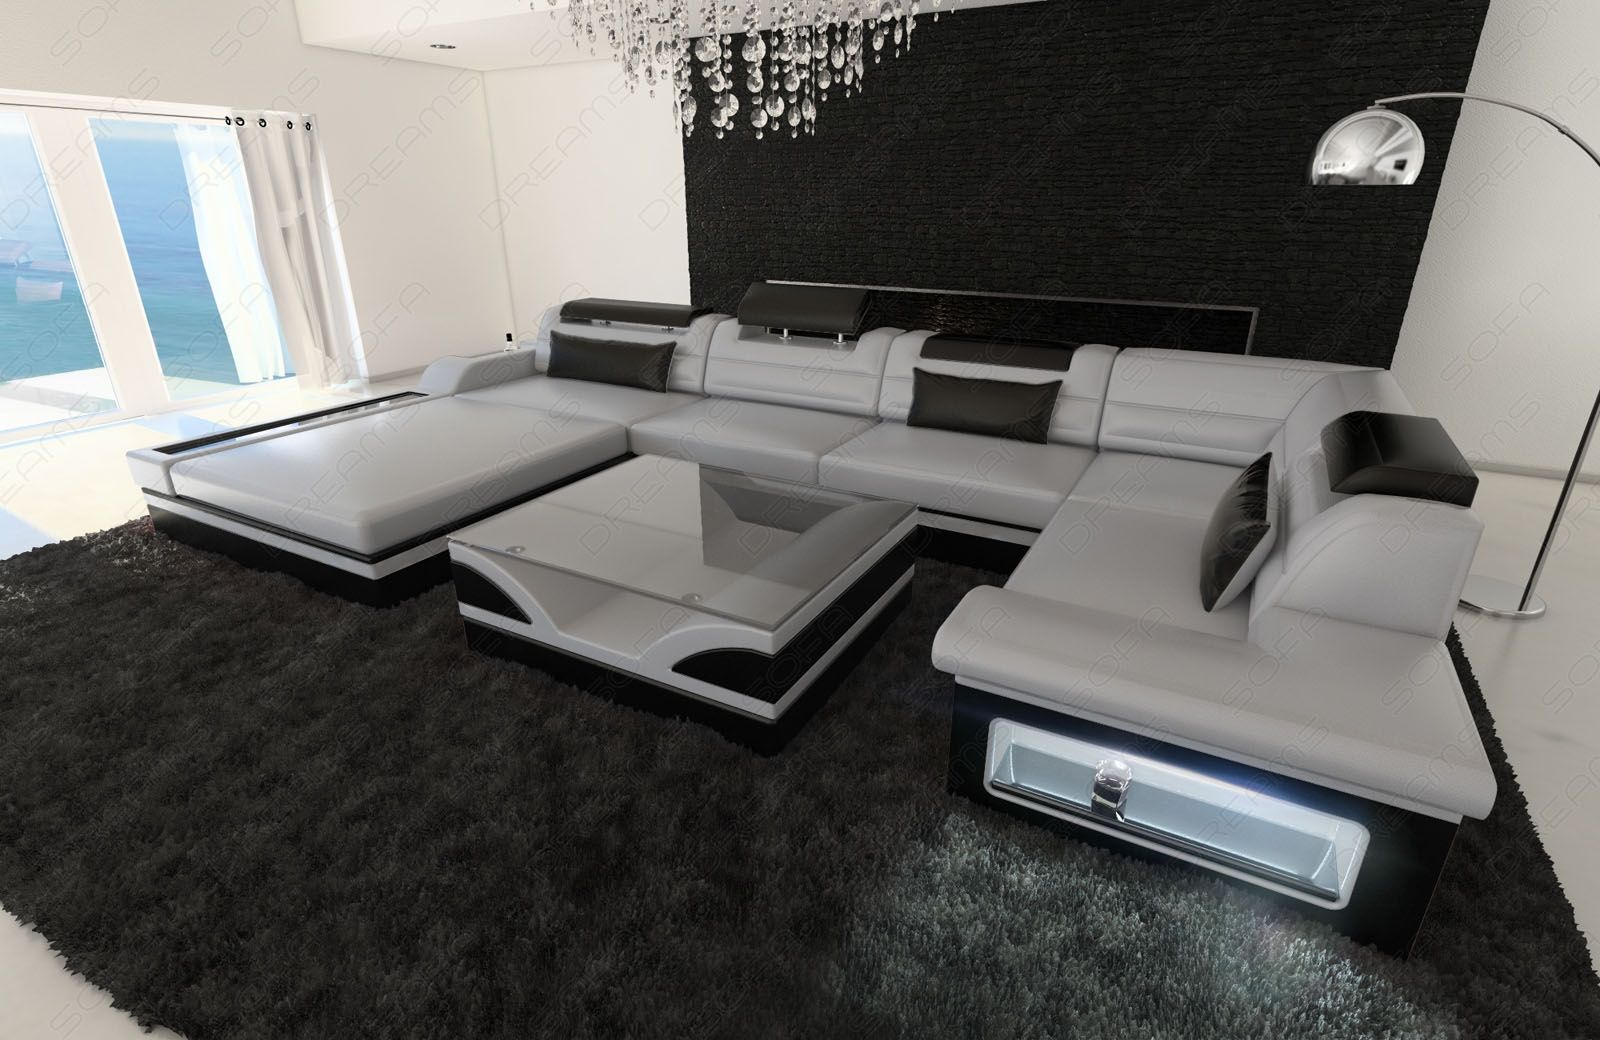 Luxury Sectional Sofa Mezzo U With Led Lights Leather Sofa Inside Expensive Sectional Sofas (Image 14 of 15)